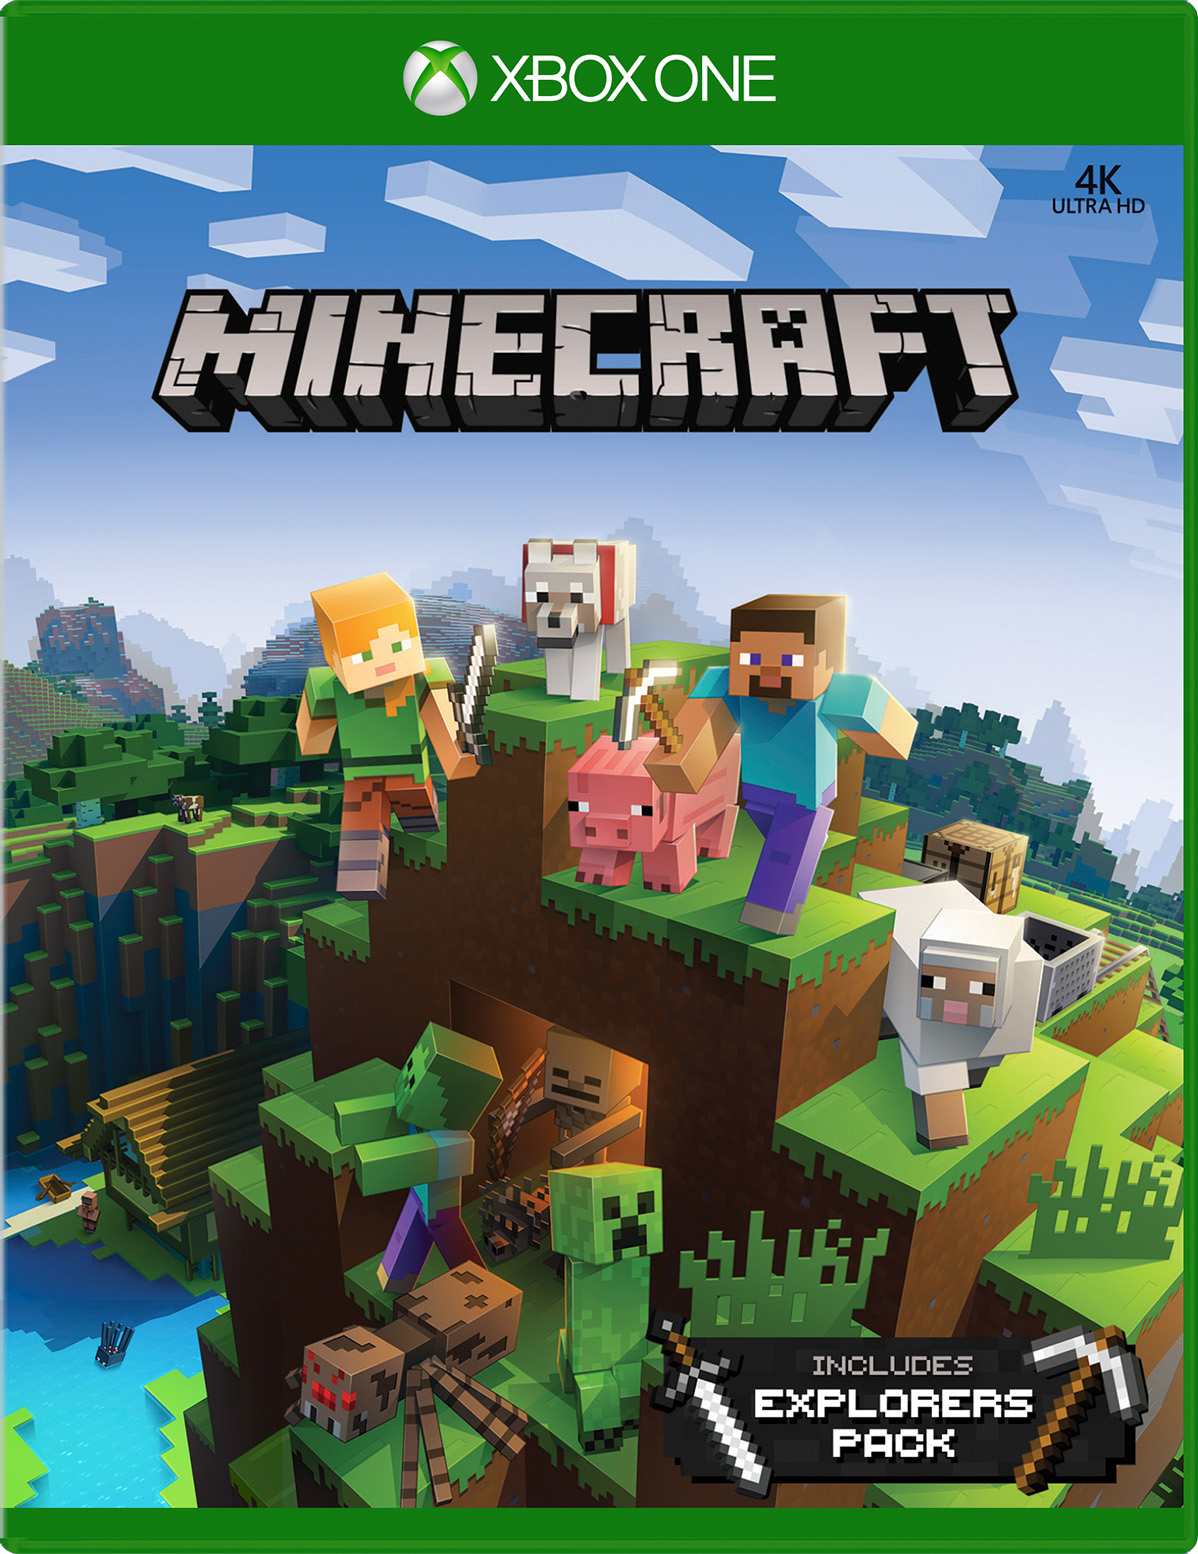 Buy Minecraft Explorers Pack for Xbox One - Microsoft Store